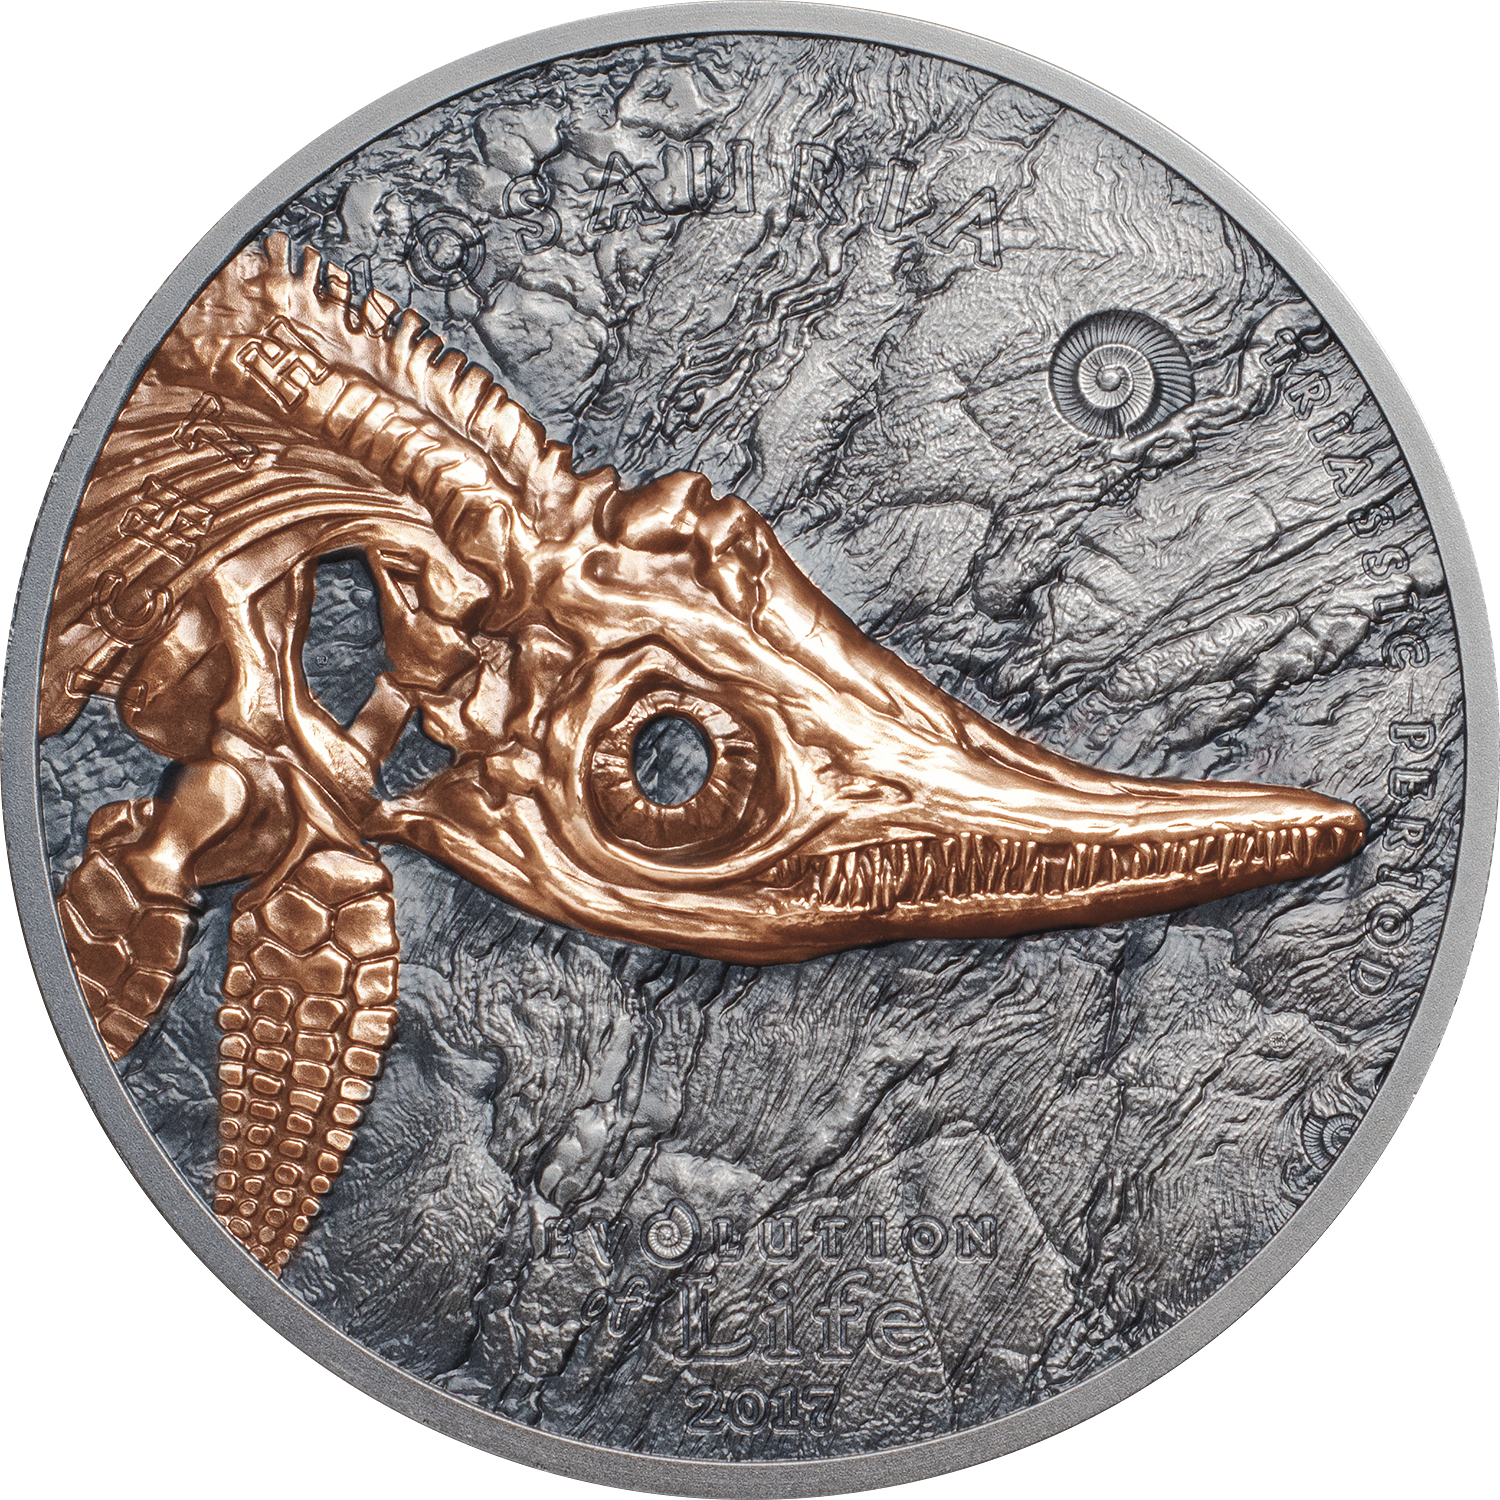 Red-gold and antique finish evolution of life silver coin with Ichthyosaur by CIT